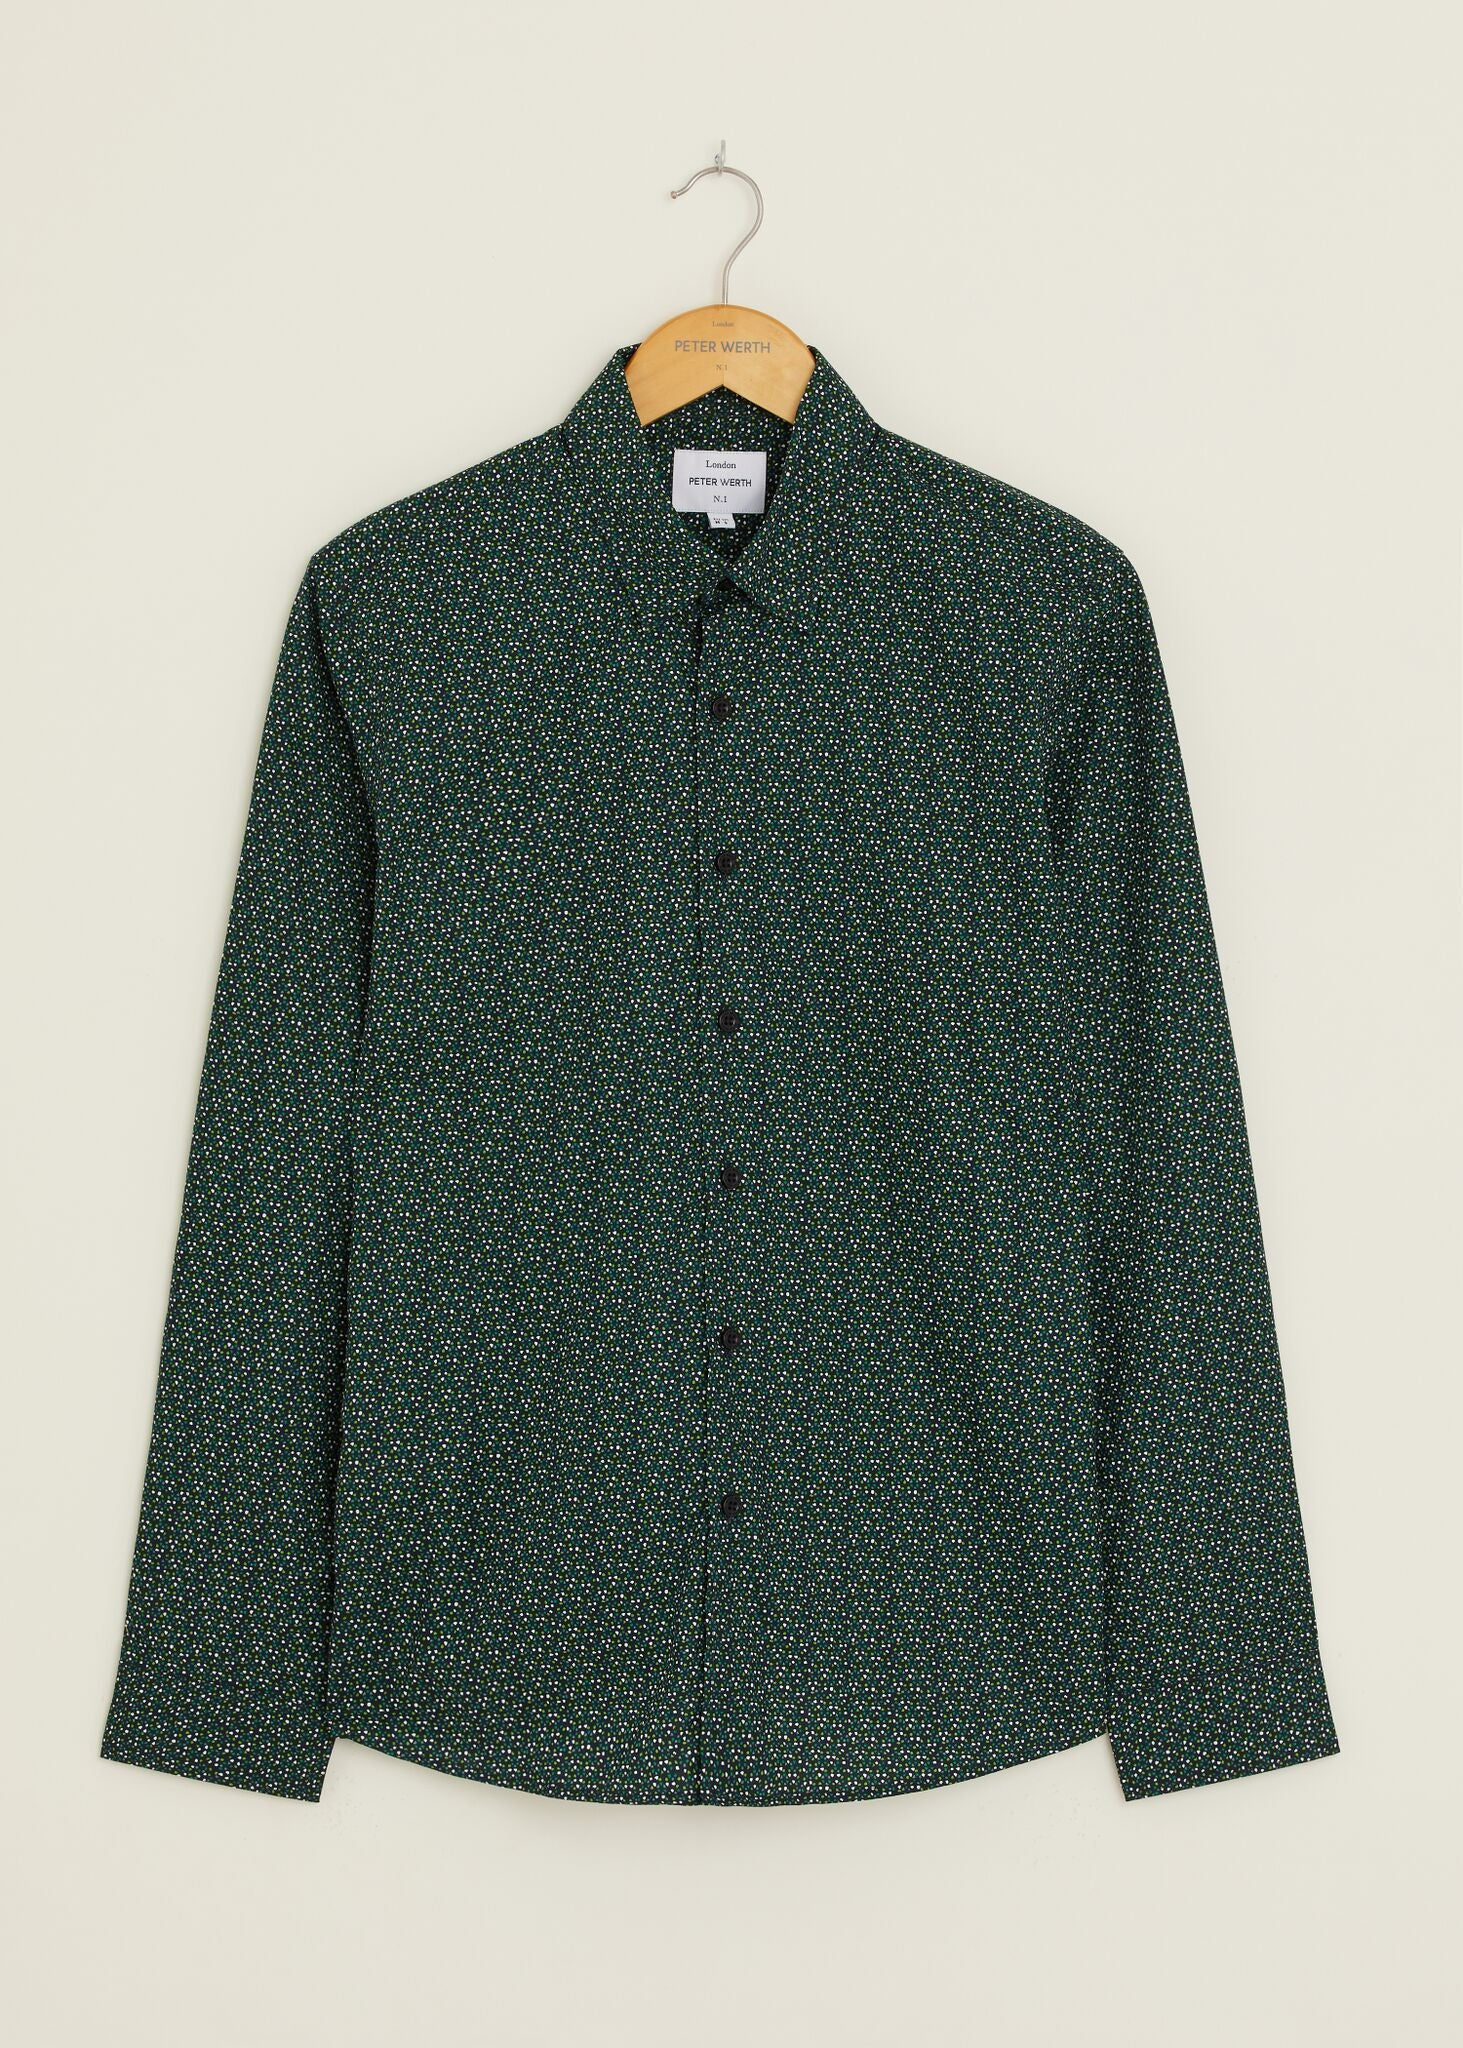 Calder Long Sleeved Shirt - Green